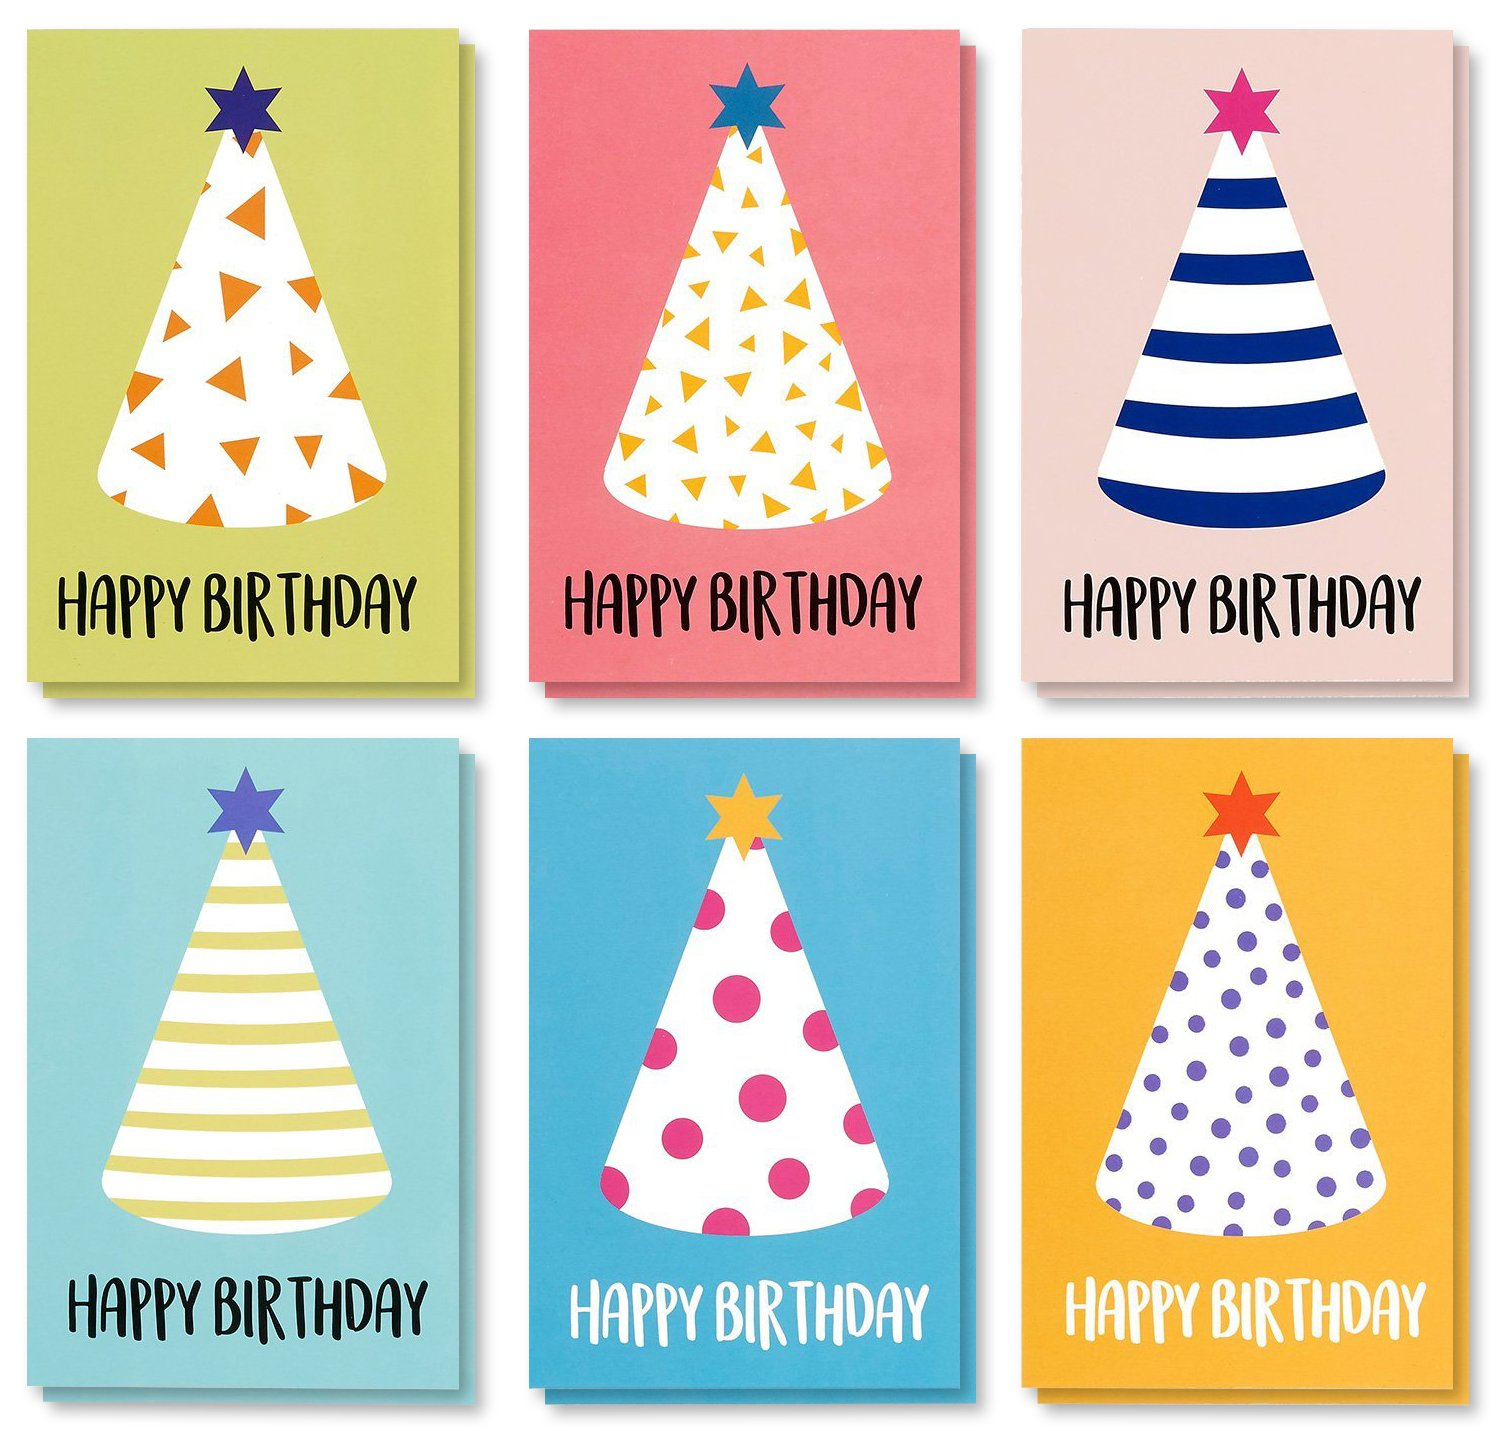 48 Pack Colorful Retro Pattern Happy Birthday Greeting Cards Creative Design Bulk Box Set Envelopes Included (4 x 6 inches) Juvale 62739